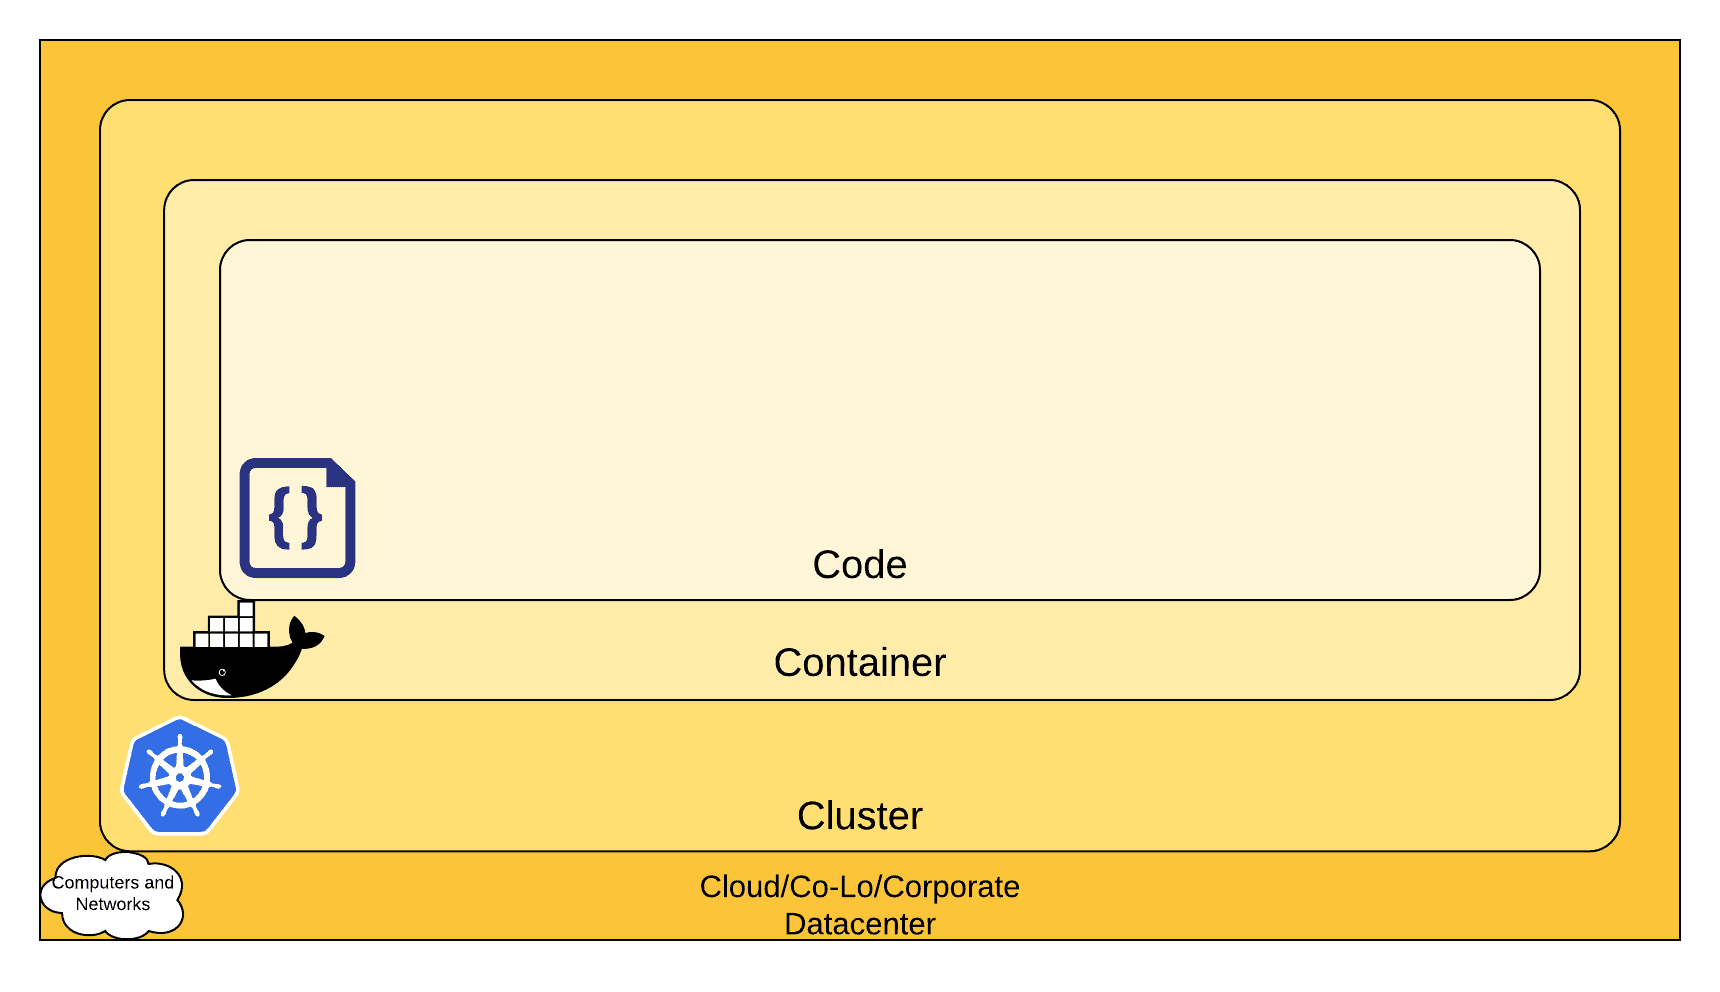 Image depicts a Kubernetes Security diagram of the 4C's of cloud native security: cloud, clusters, containers, and code.